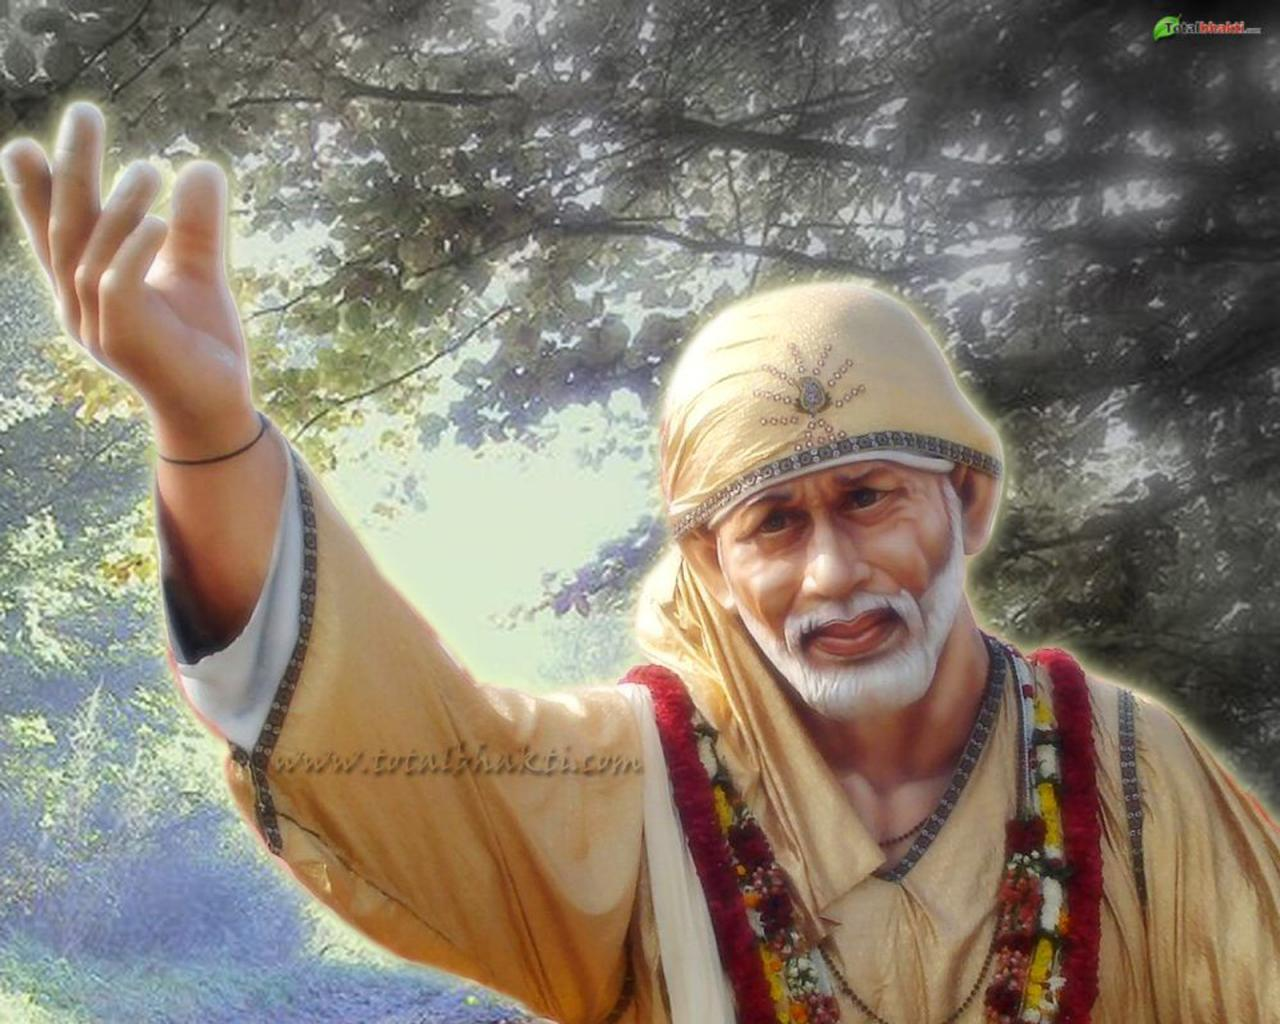 picture collection: sai baba pics & aarti